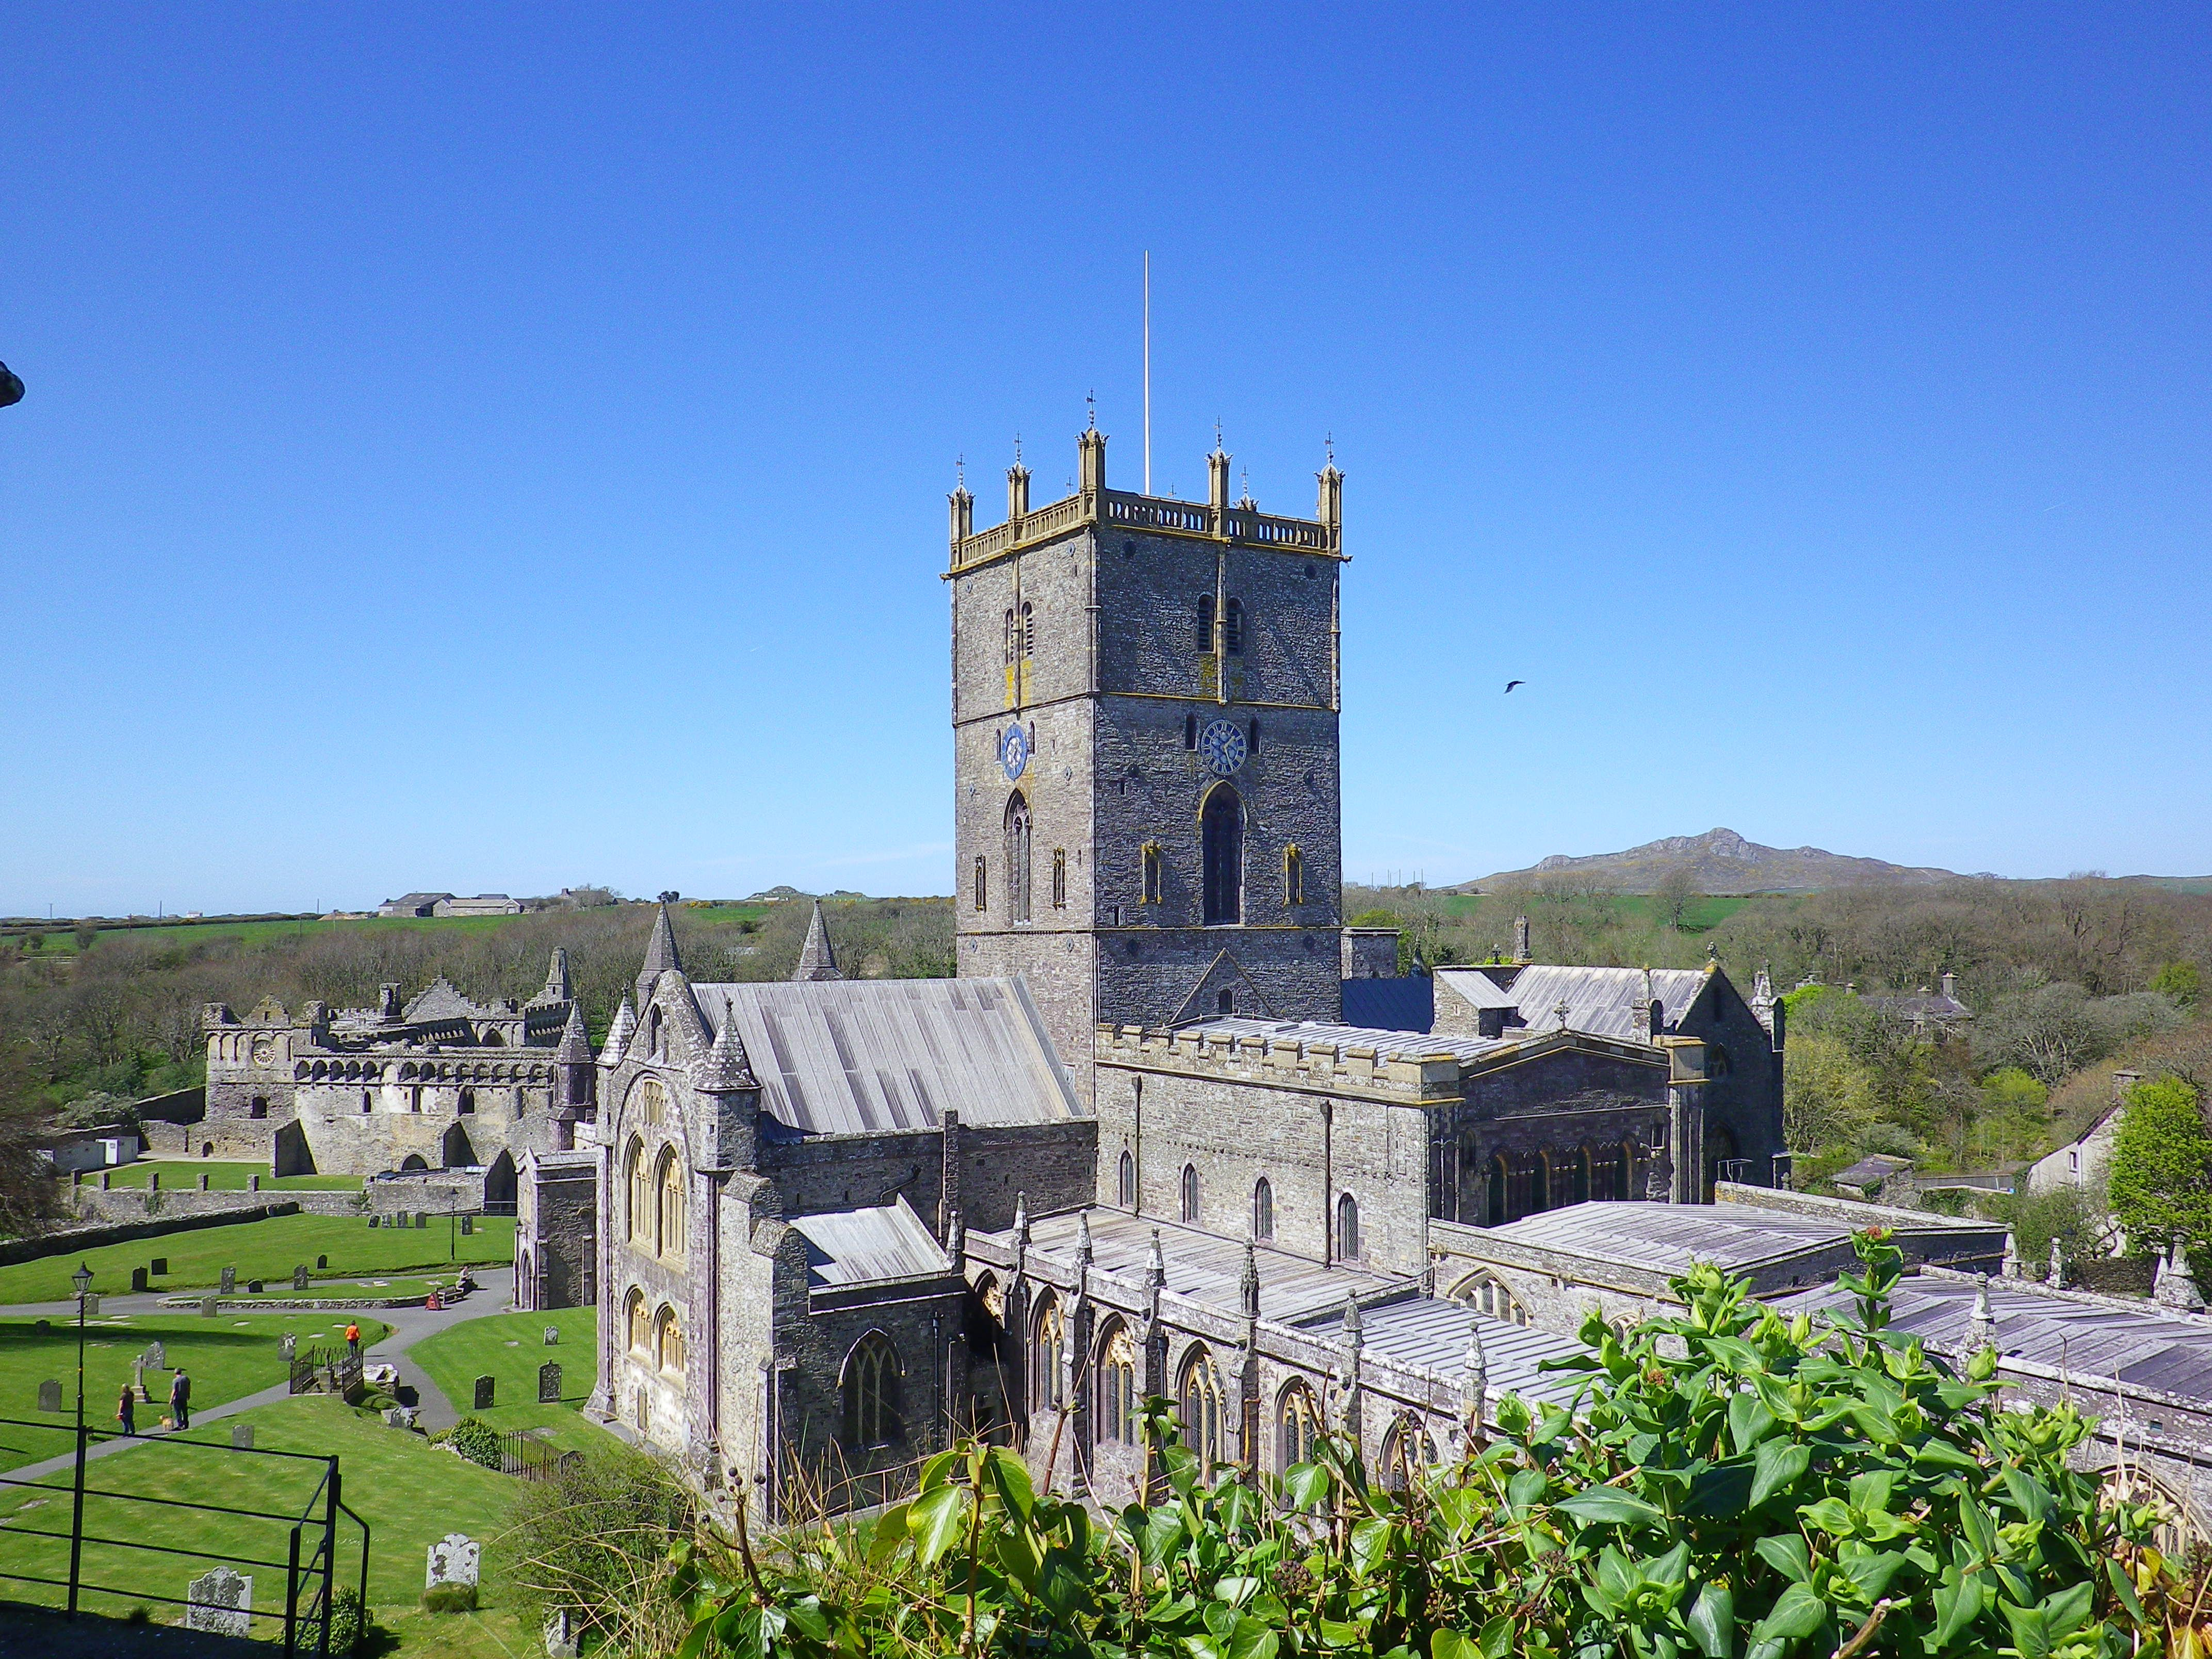 the beautiful and tranquil St David's cathedral